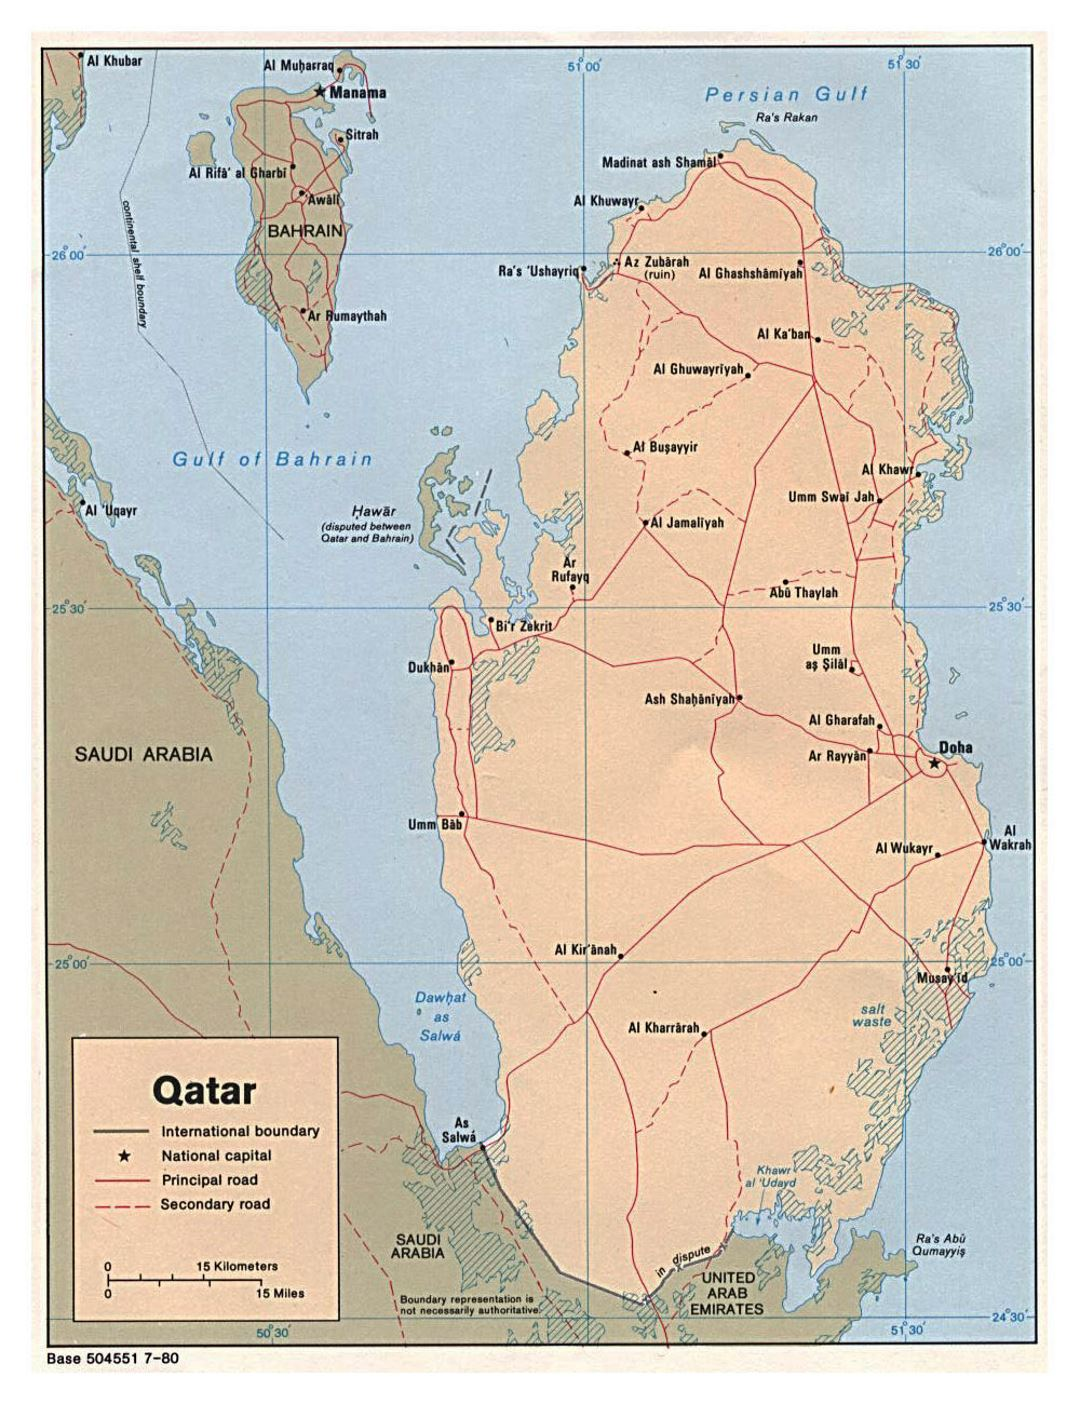 Detailed political map of Qatar with roads and cities - 1980